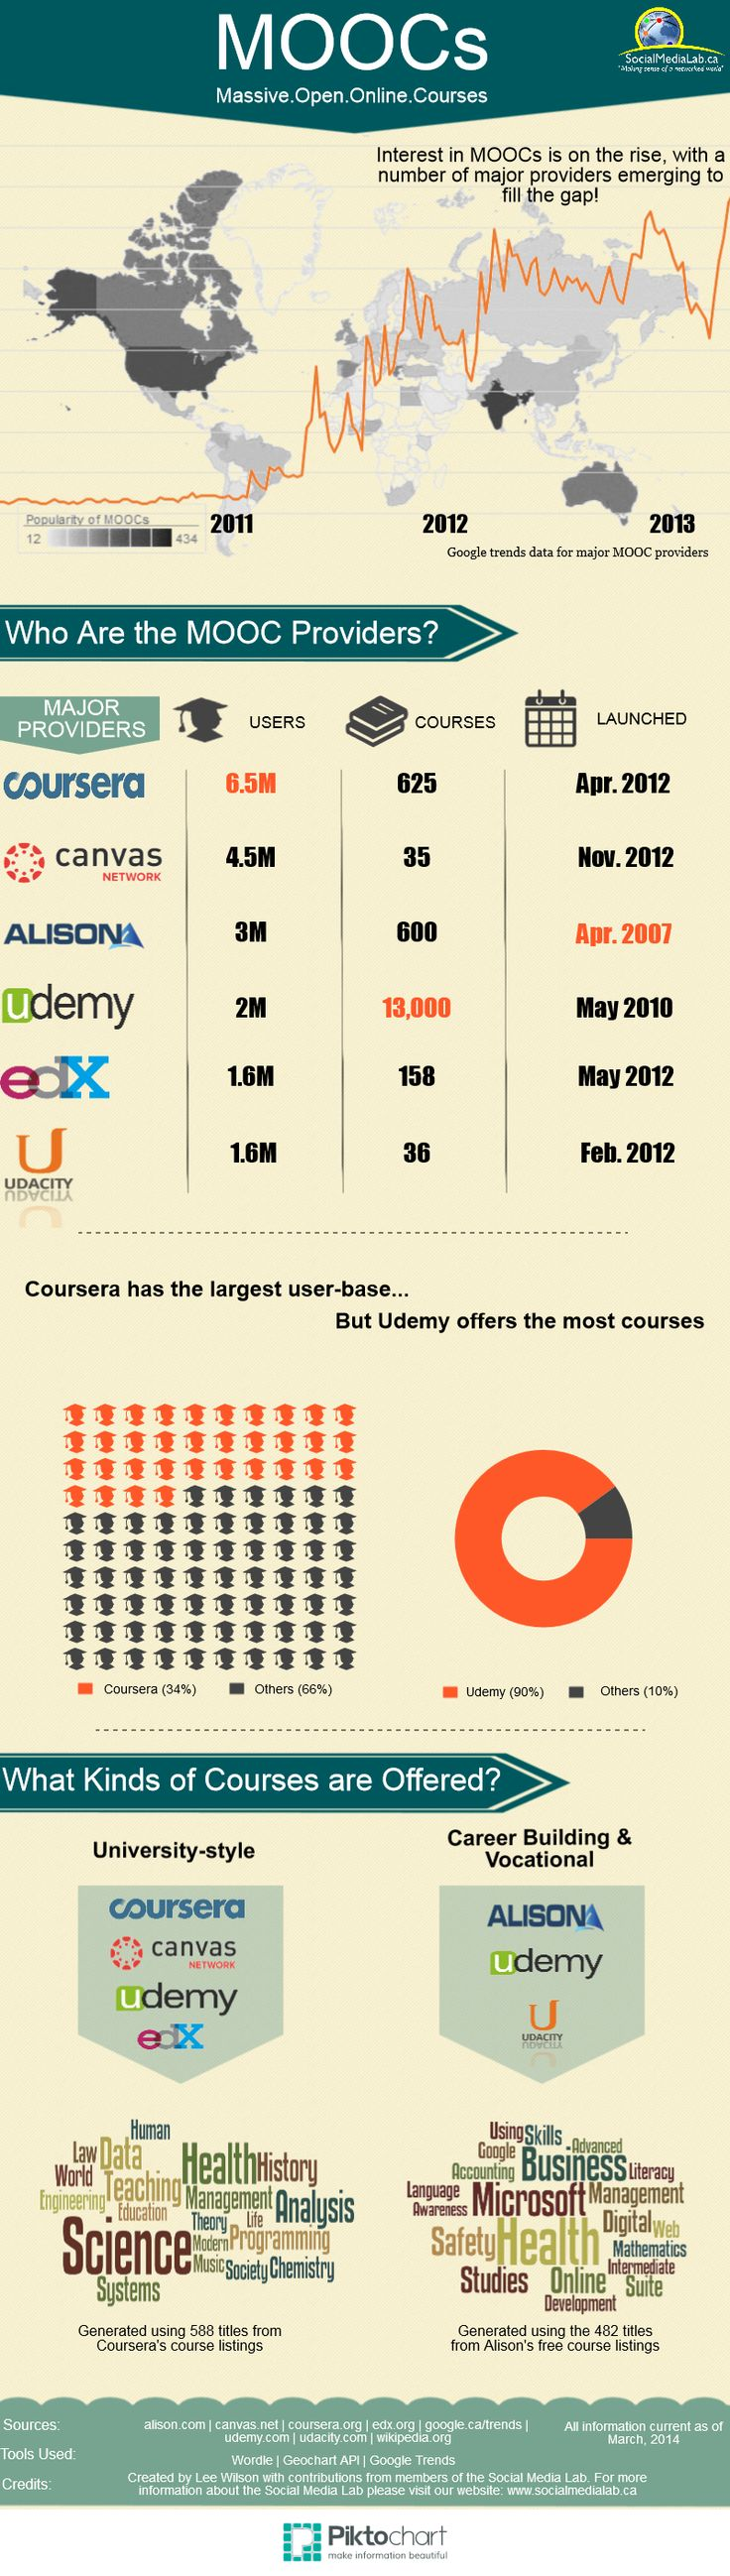 MOOCs of Every Shape and Size | #infographics created in @Piktochart